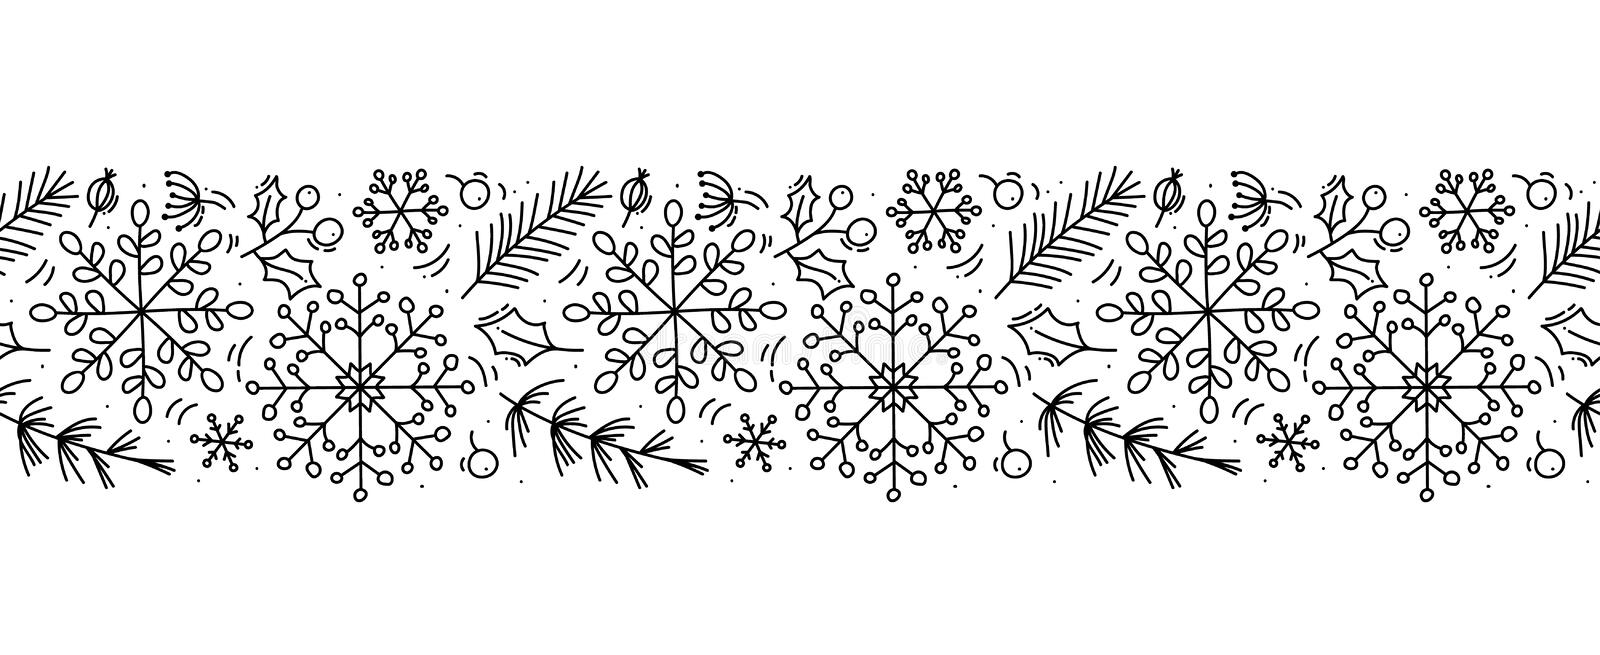 Vector Christmas monoline scandinavian seamless pattern ornament new year fir tree and leaves. Winter doodle xmas stock illustration